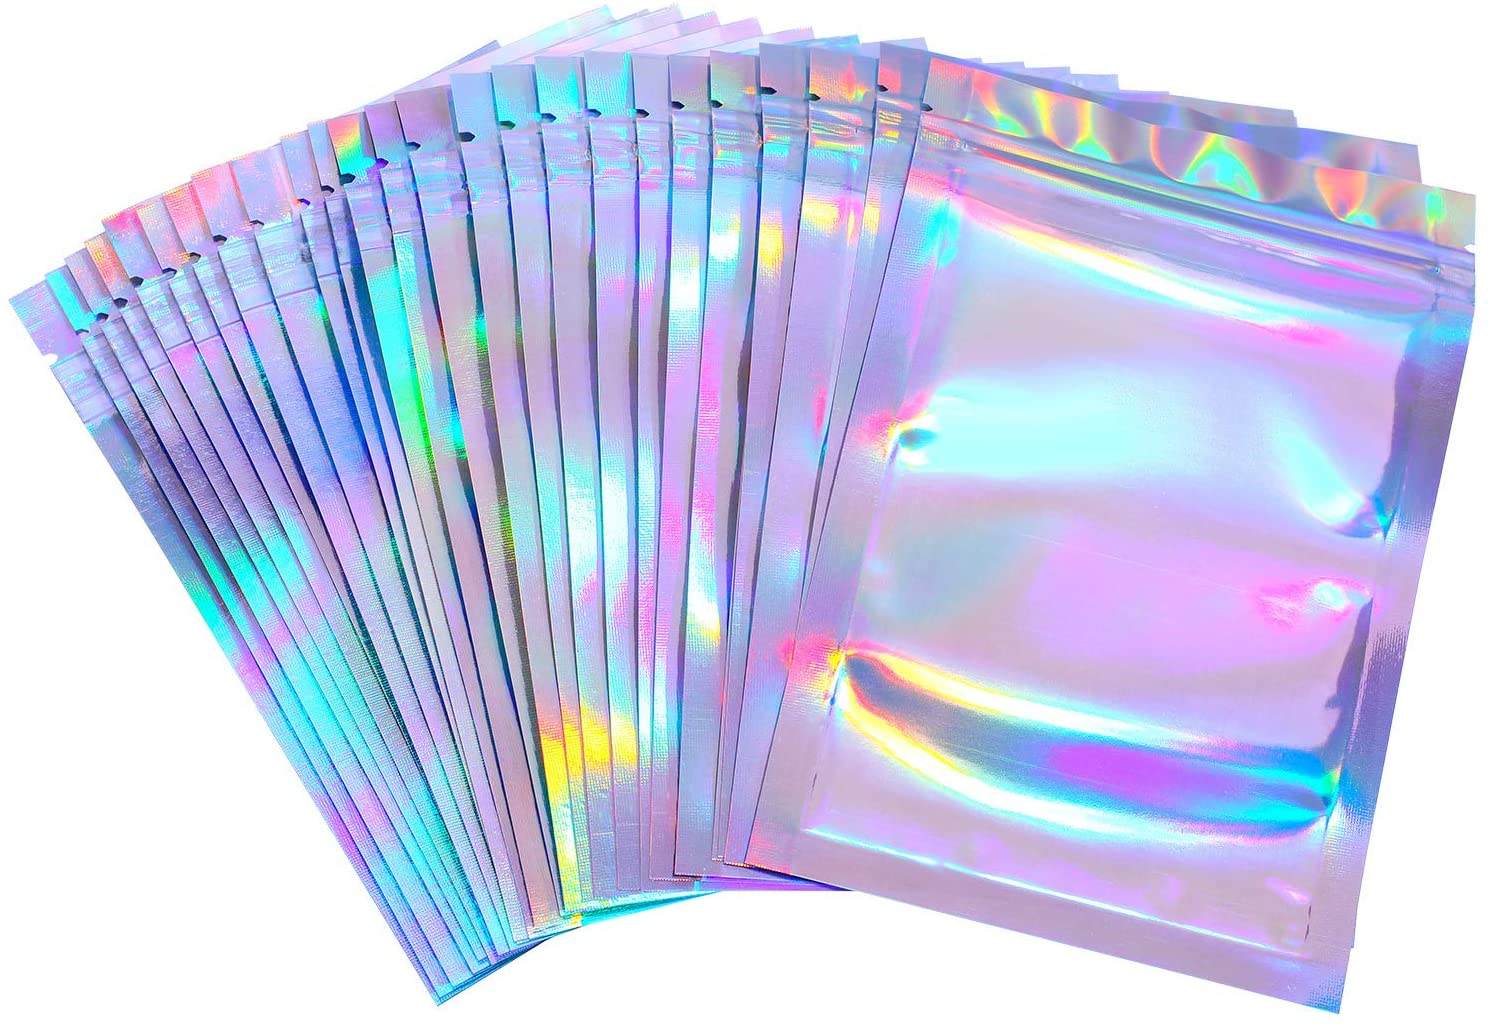 100 Pieces Resealable Smell Proof Bags Foil Pouch Bag Flat Ziplock Bag for Party Favor Food Storage (Holographic Color, 7 x 9 Inches)